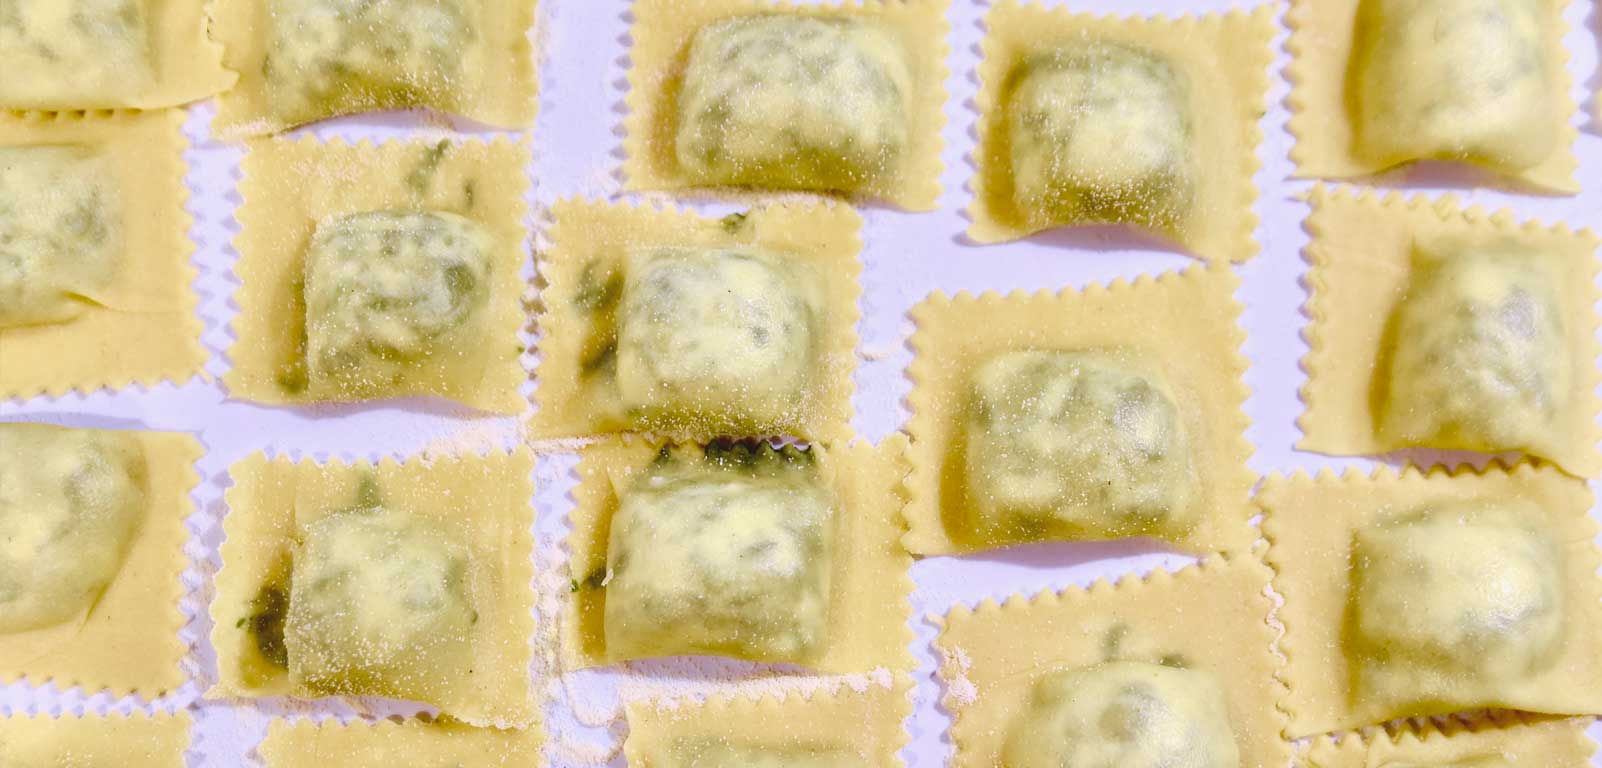 HOMEMADE RAVIOLI WITH HERBS